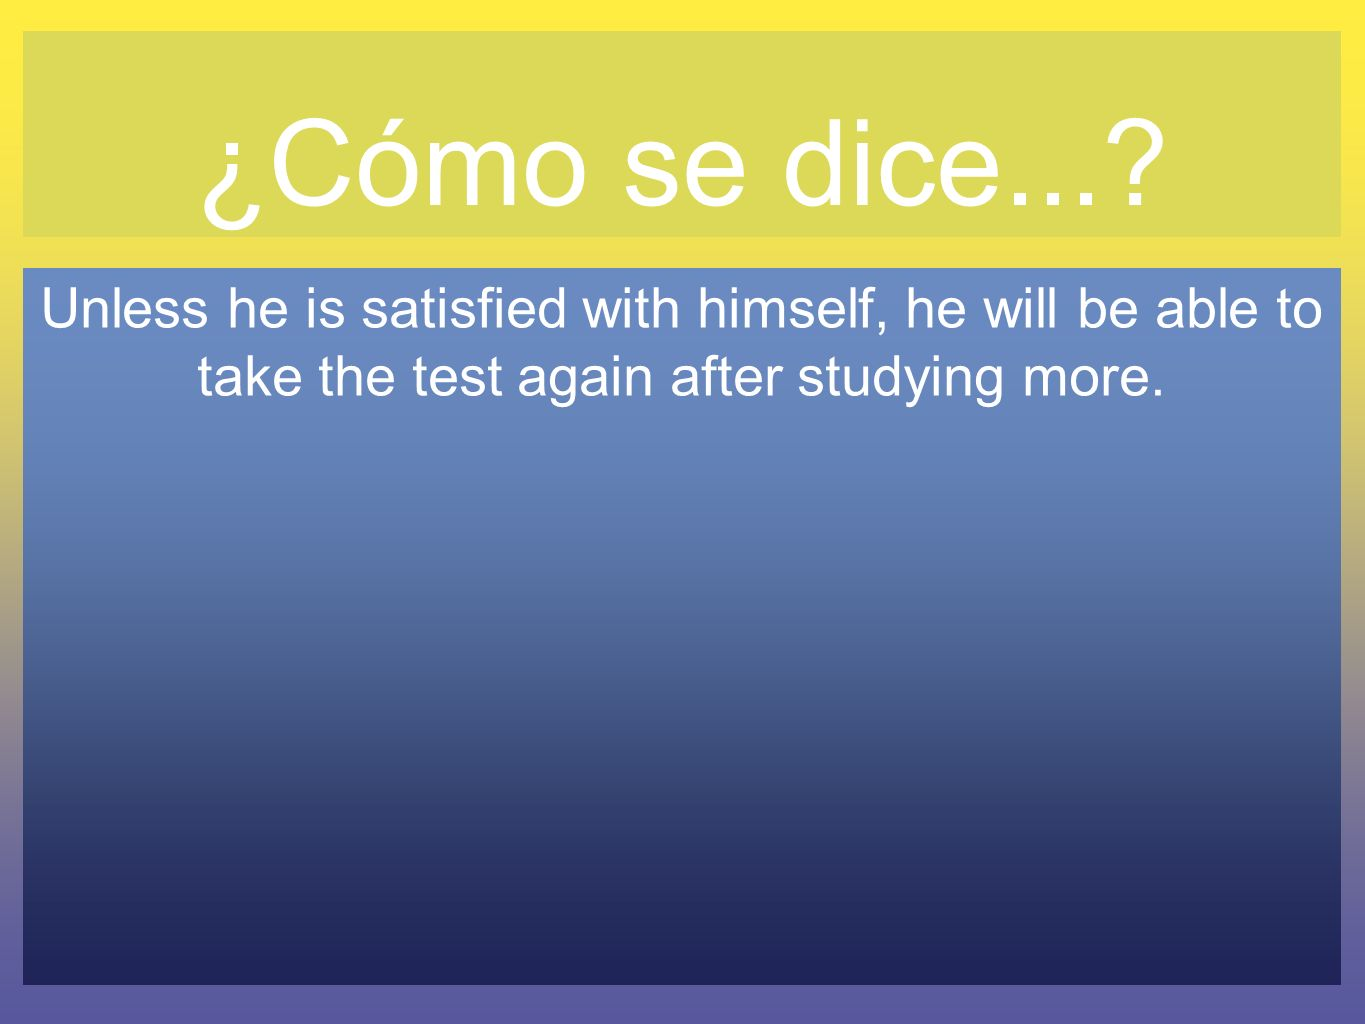 ¿Cómo se dice...? Unless he is satisfied with himself, he will be able to take the test again after studying more.